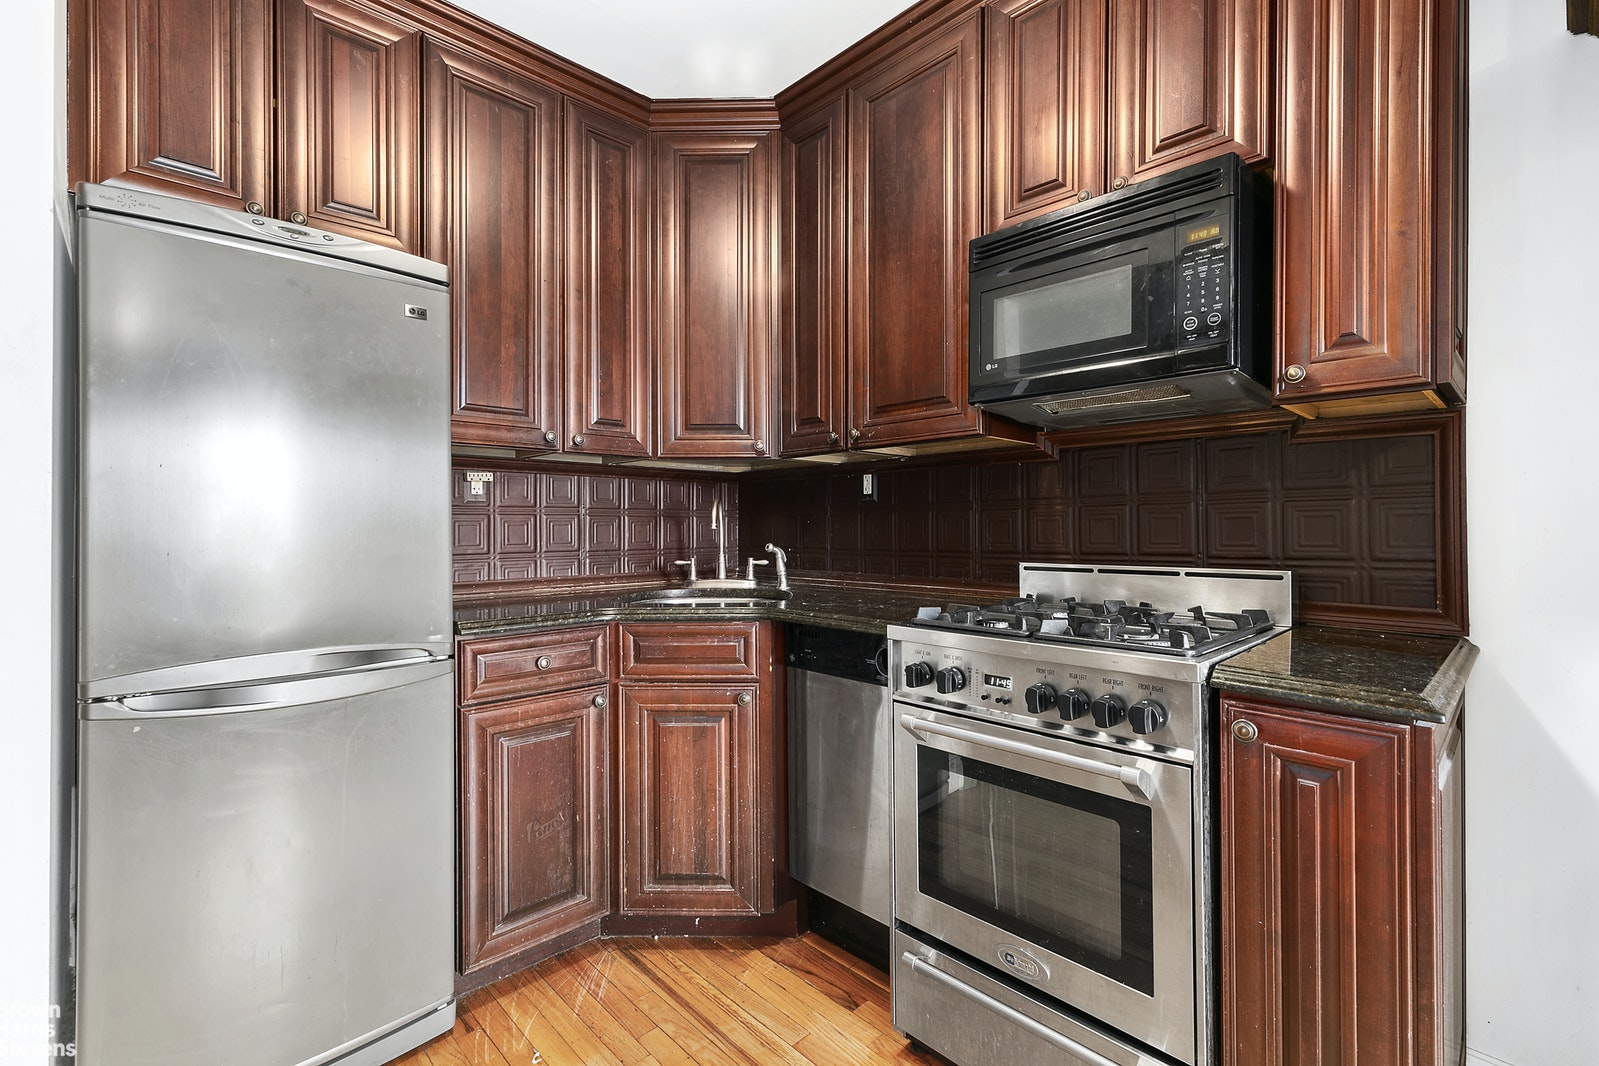 235 WEST 137TH STREET, Harlem, $595,000, Web #: 20671818